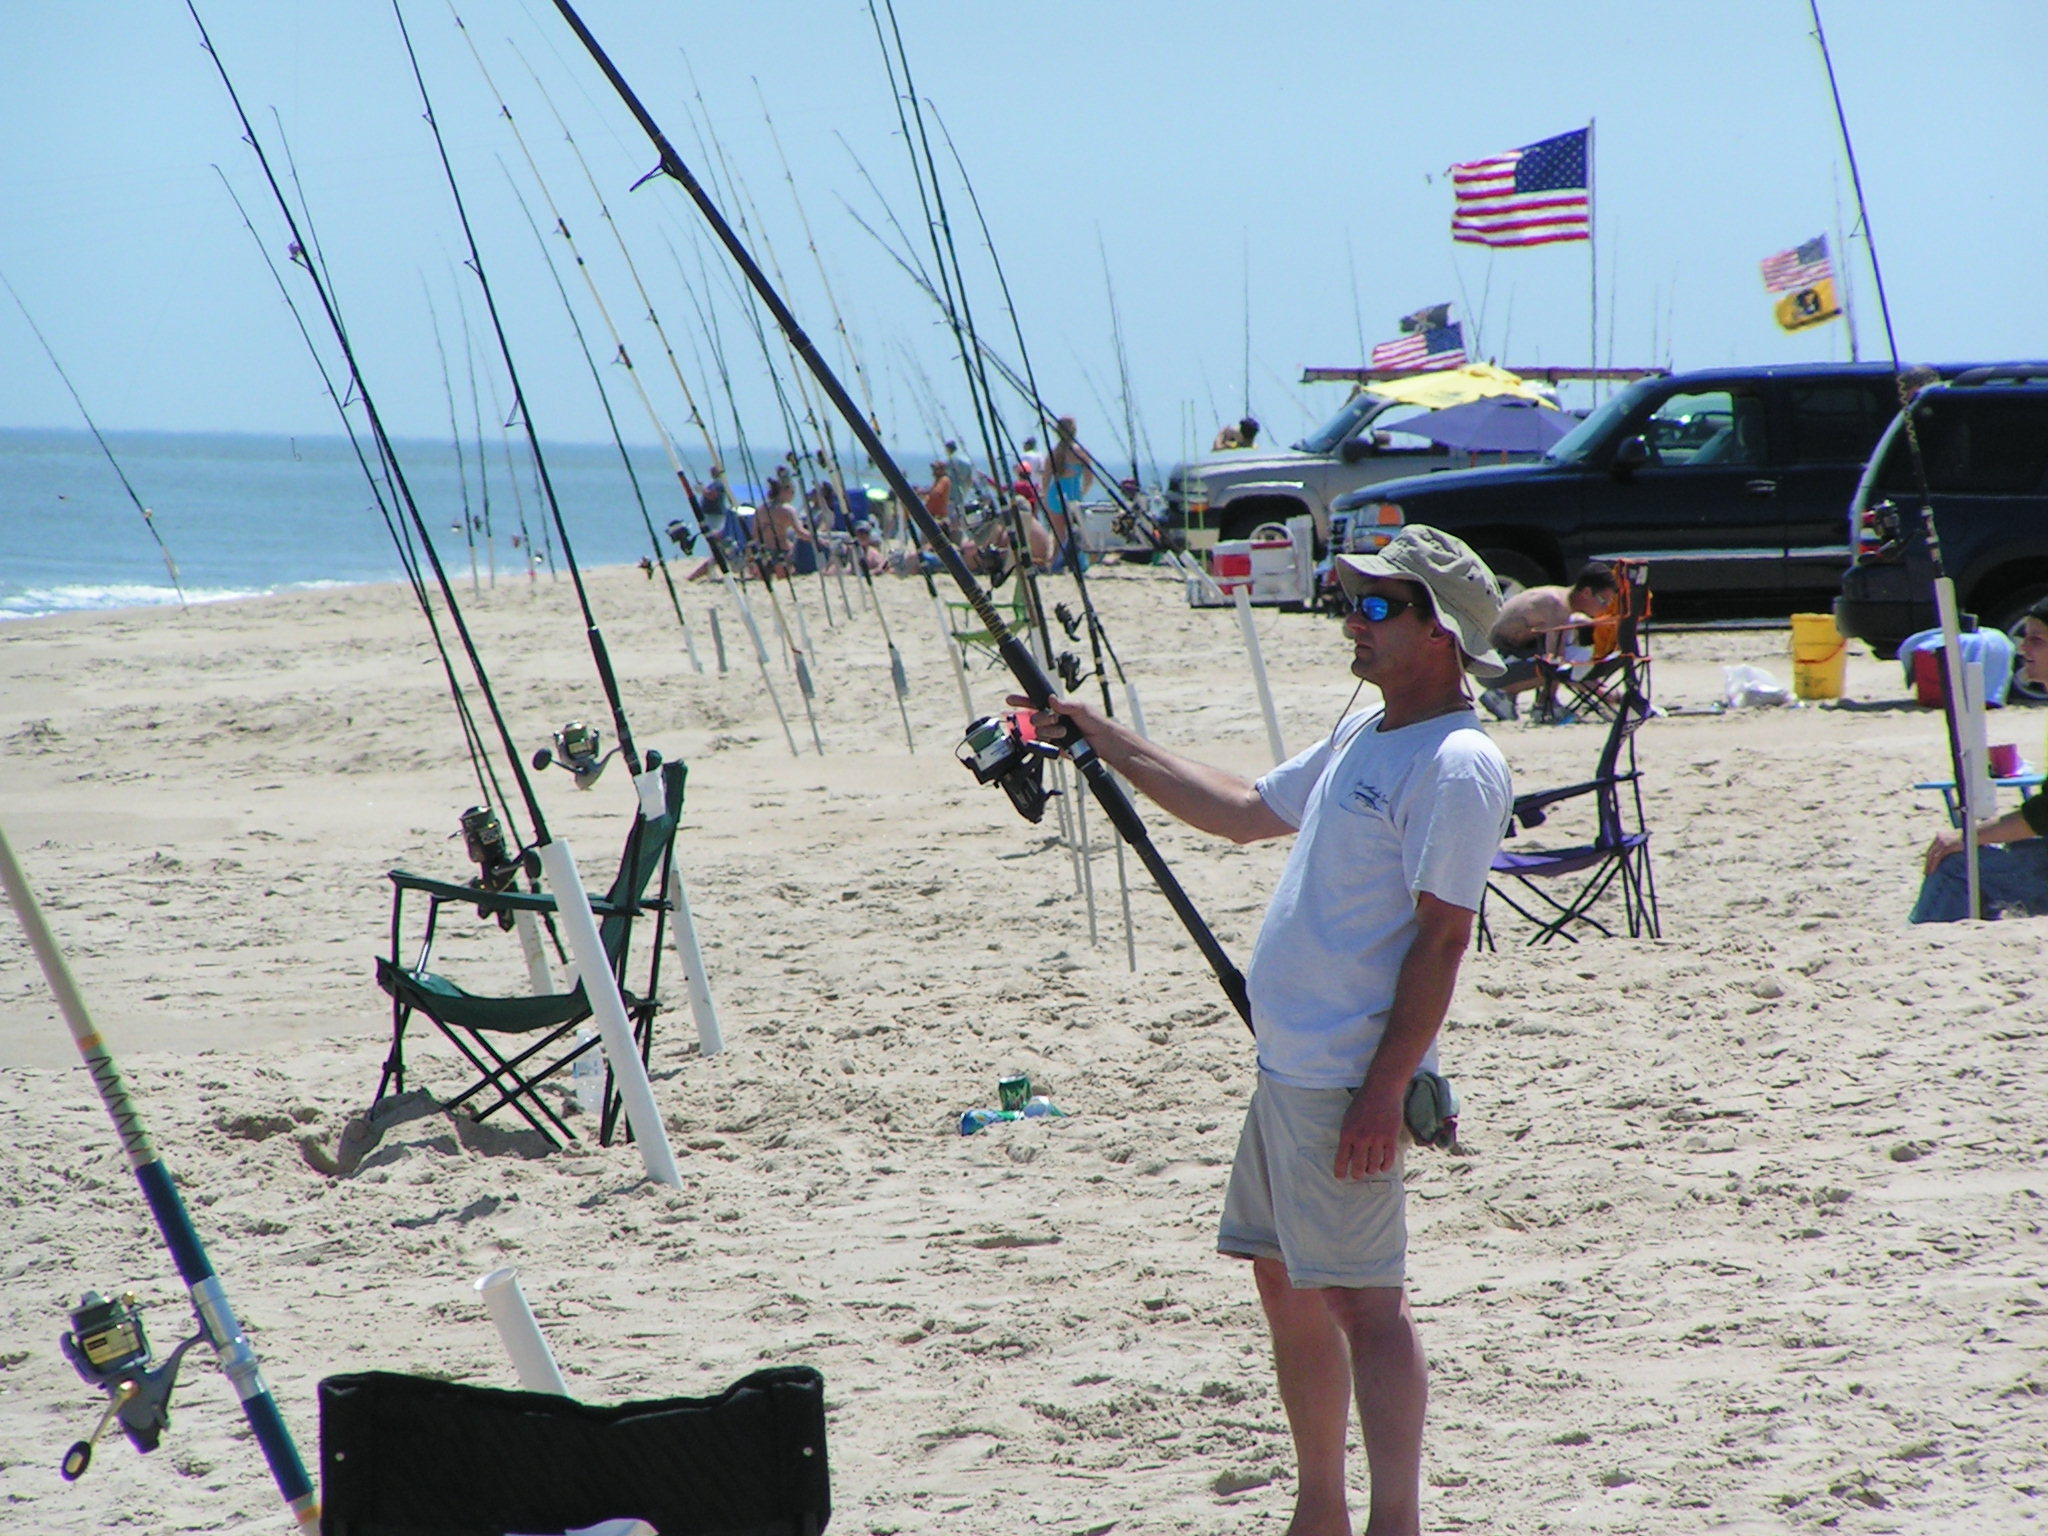 Spring Surf Fishing tournament, old inlet, 3rs beach, conquest, key box, tower, fenwidk island, Delaware seashore state park, sussex county, fiathful steward, savages ditch